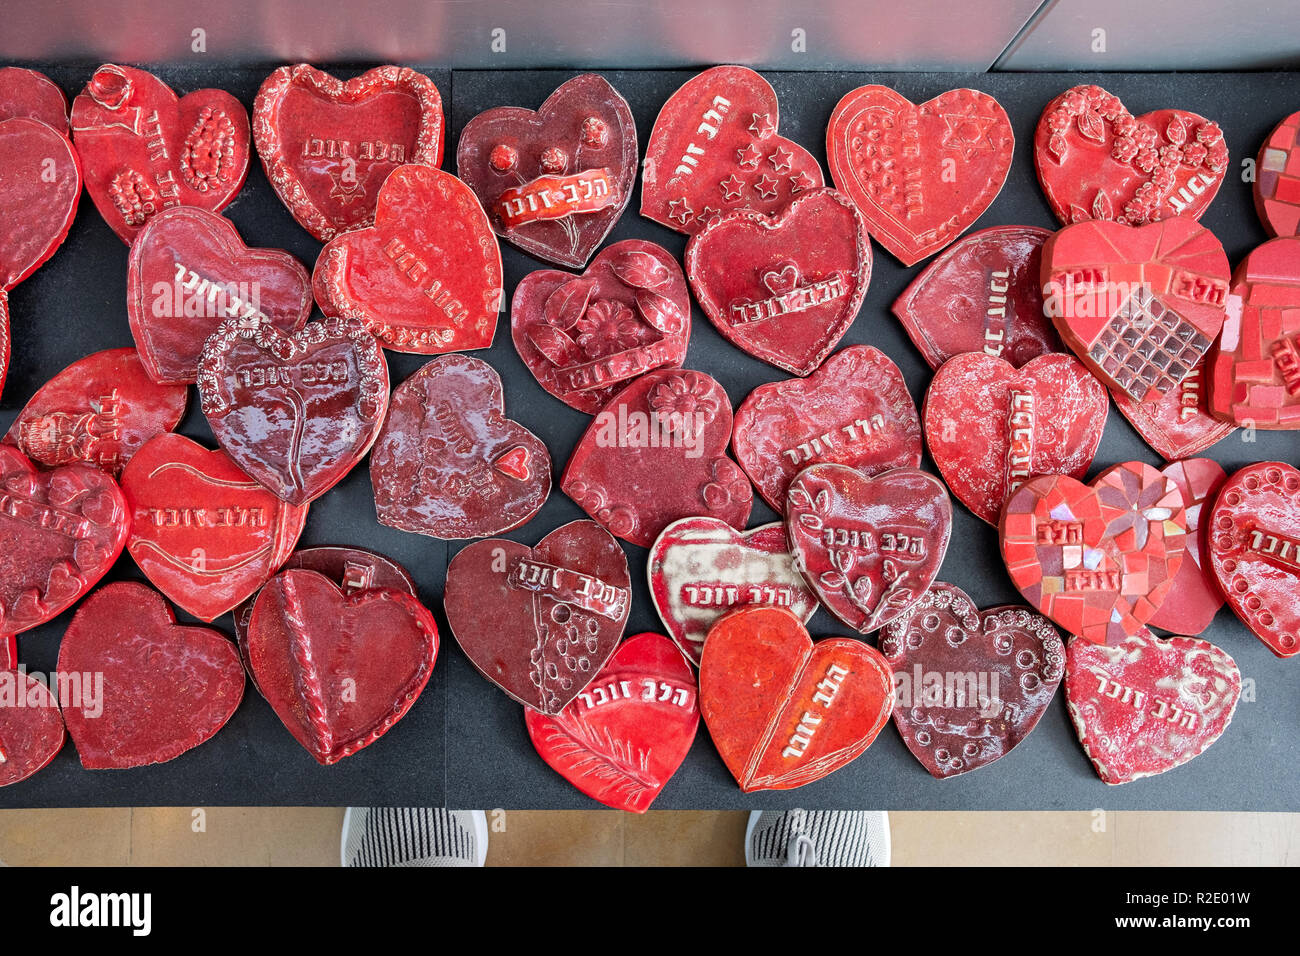 Some of the 27,000 ceramic hearts on display at the Rabin Center to commemorate Israelis killed in wars and terrorist attacks. In Tel Aviv, Israel Stock Photo